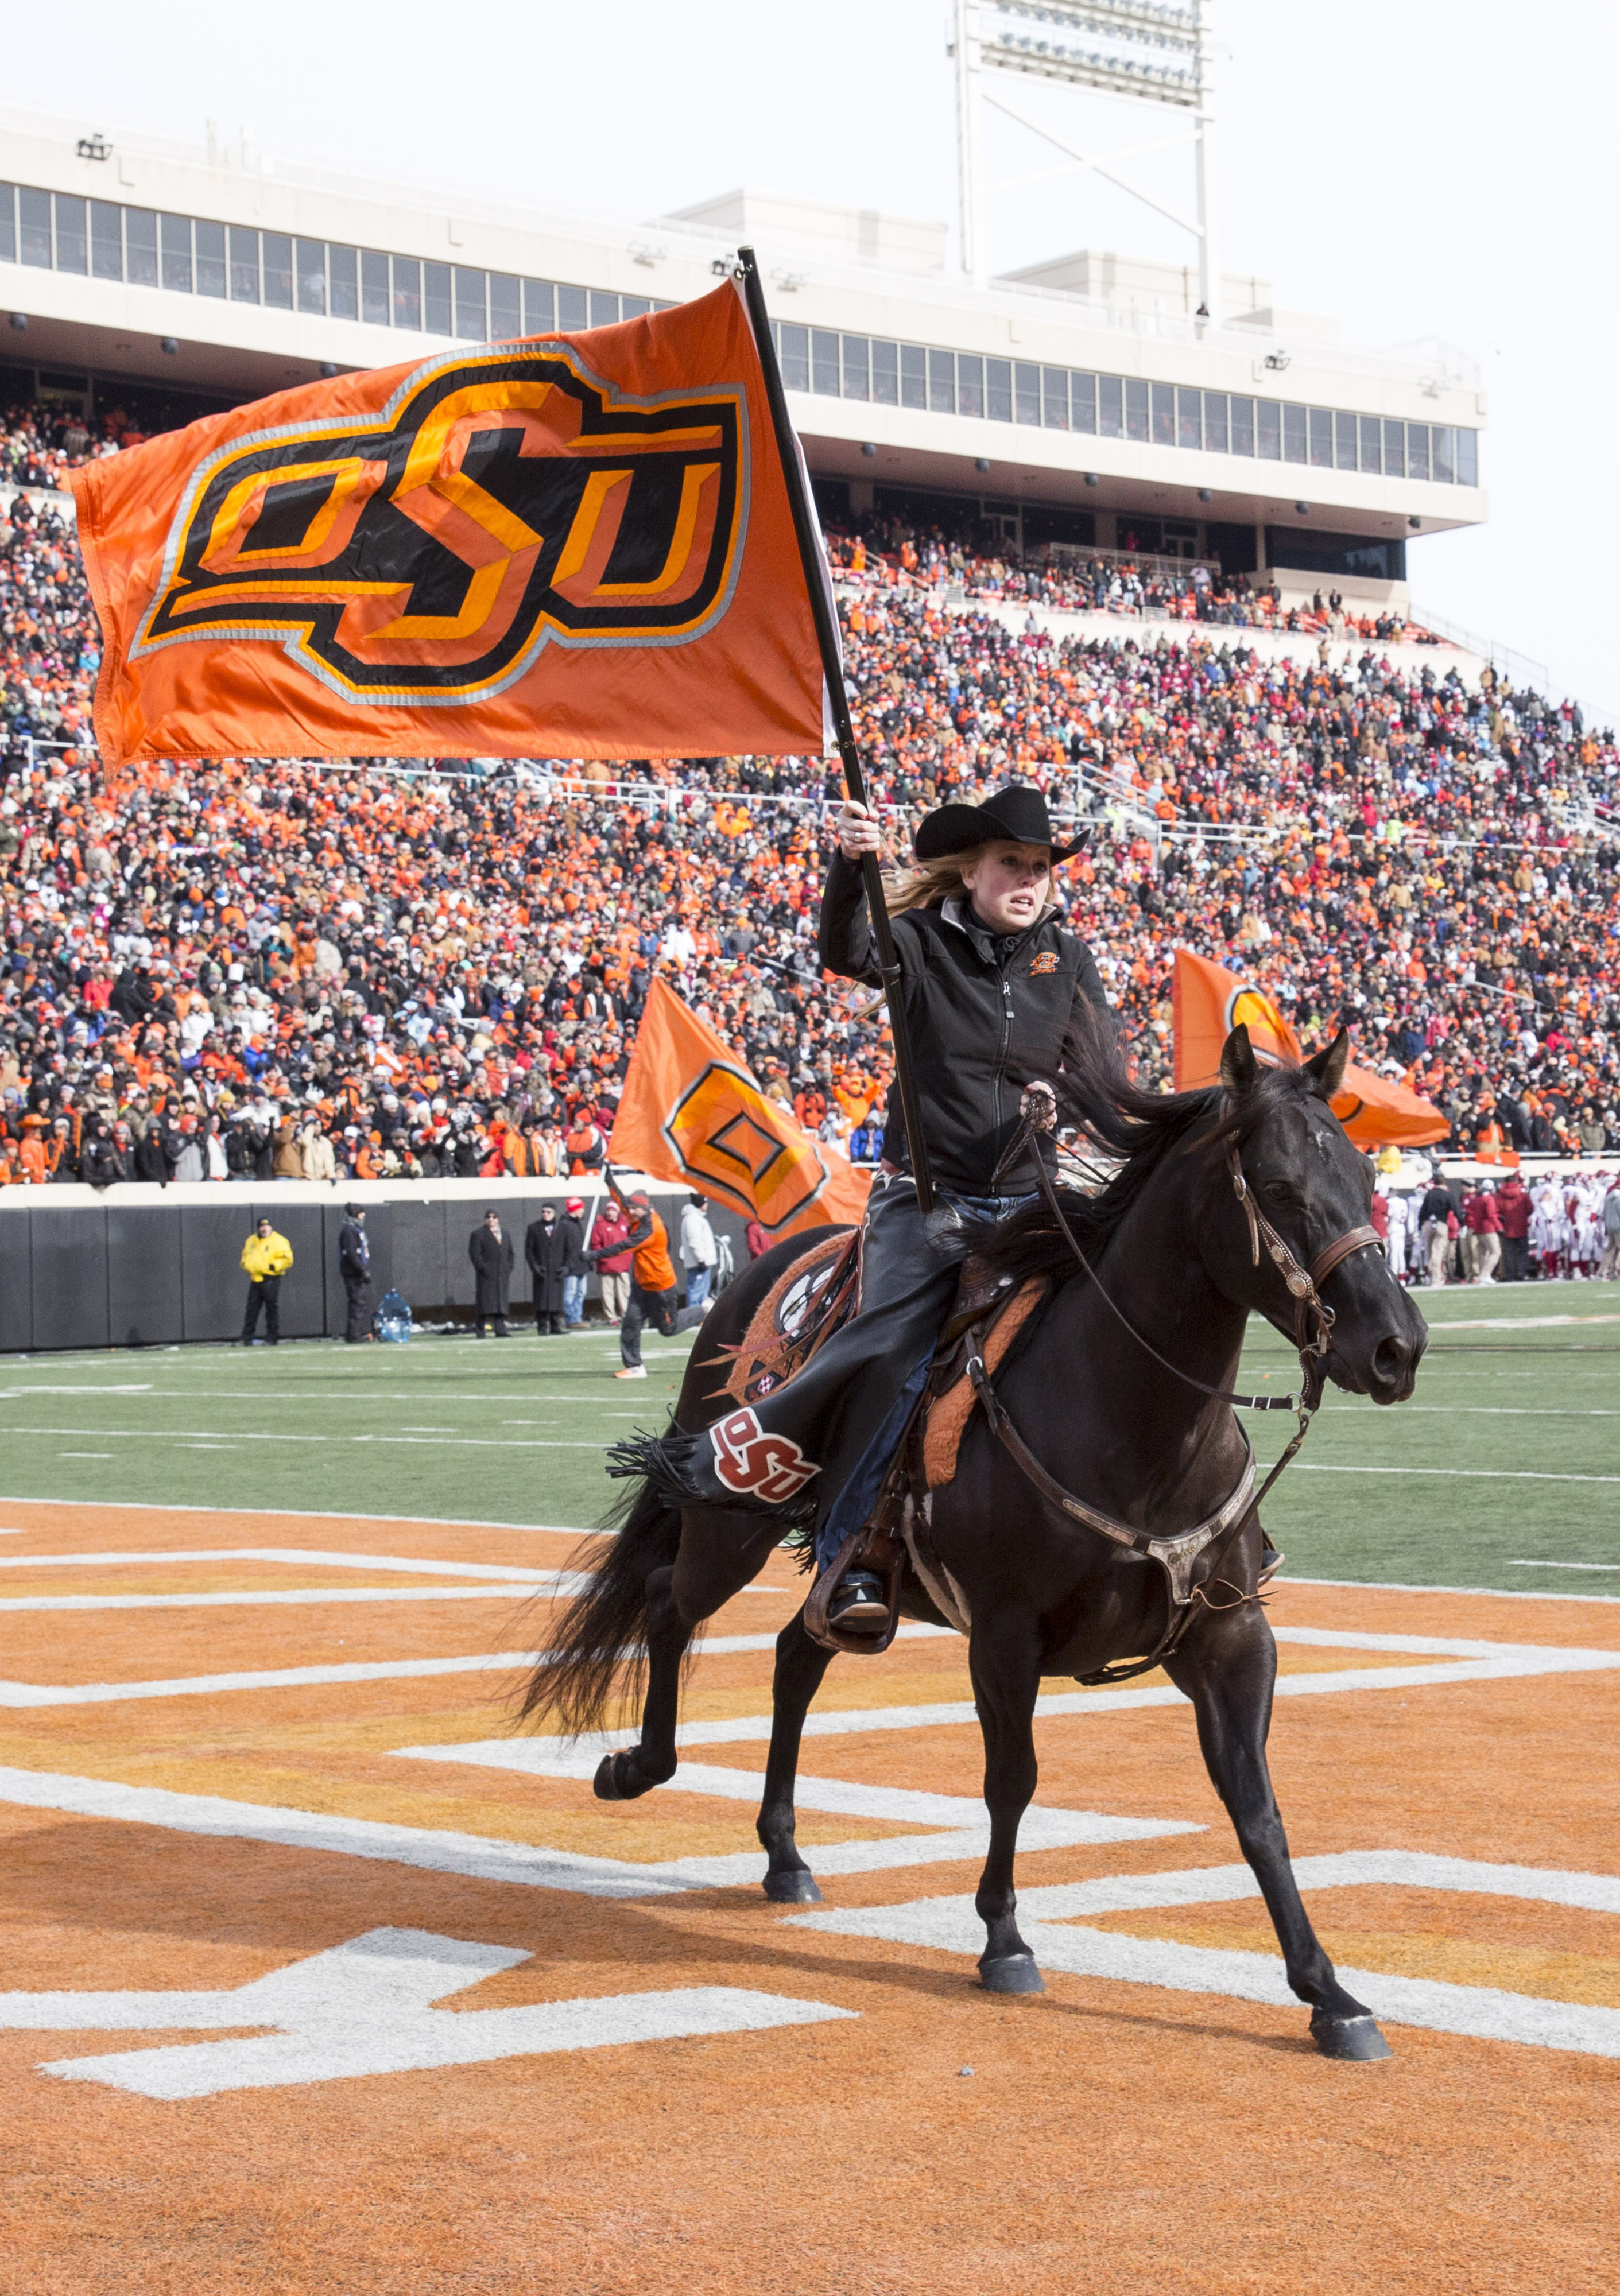 4-star Oklahoma State RB Devon Thomas charged with robbery, shooting to kill